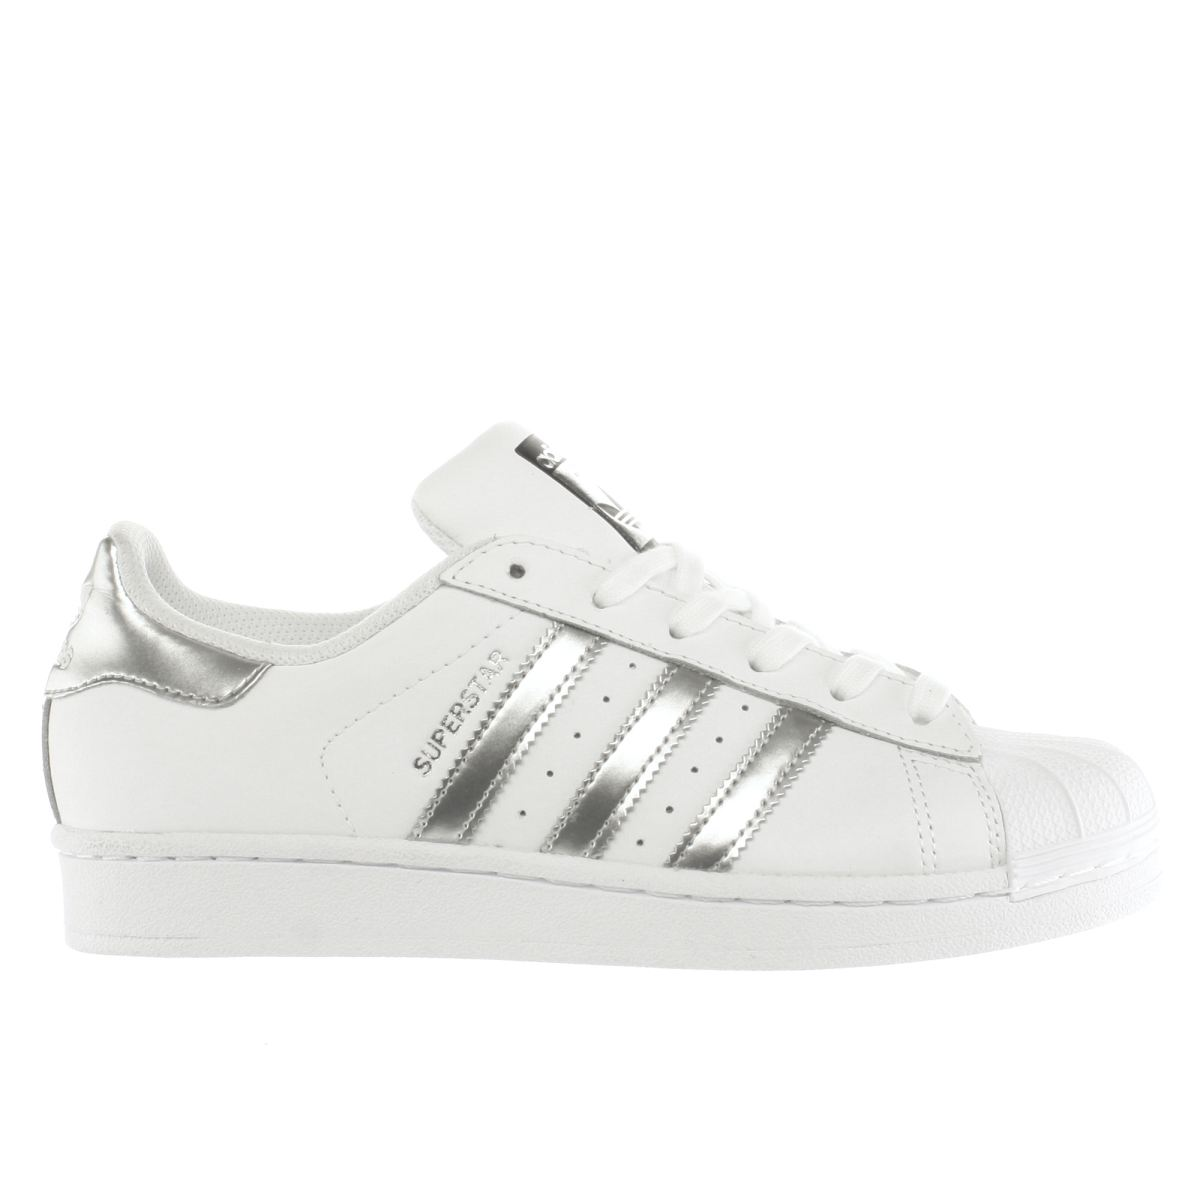 adidas superstar white women boys high top adidas adidas